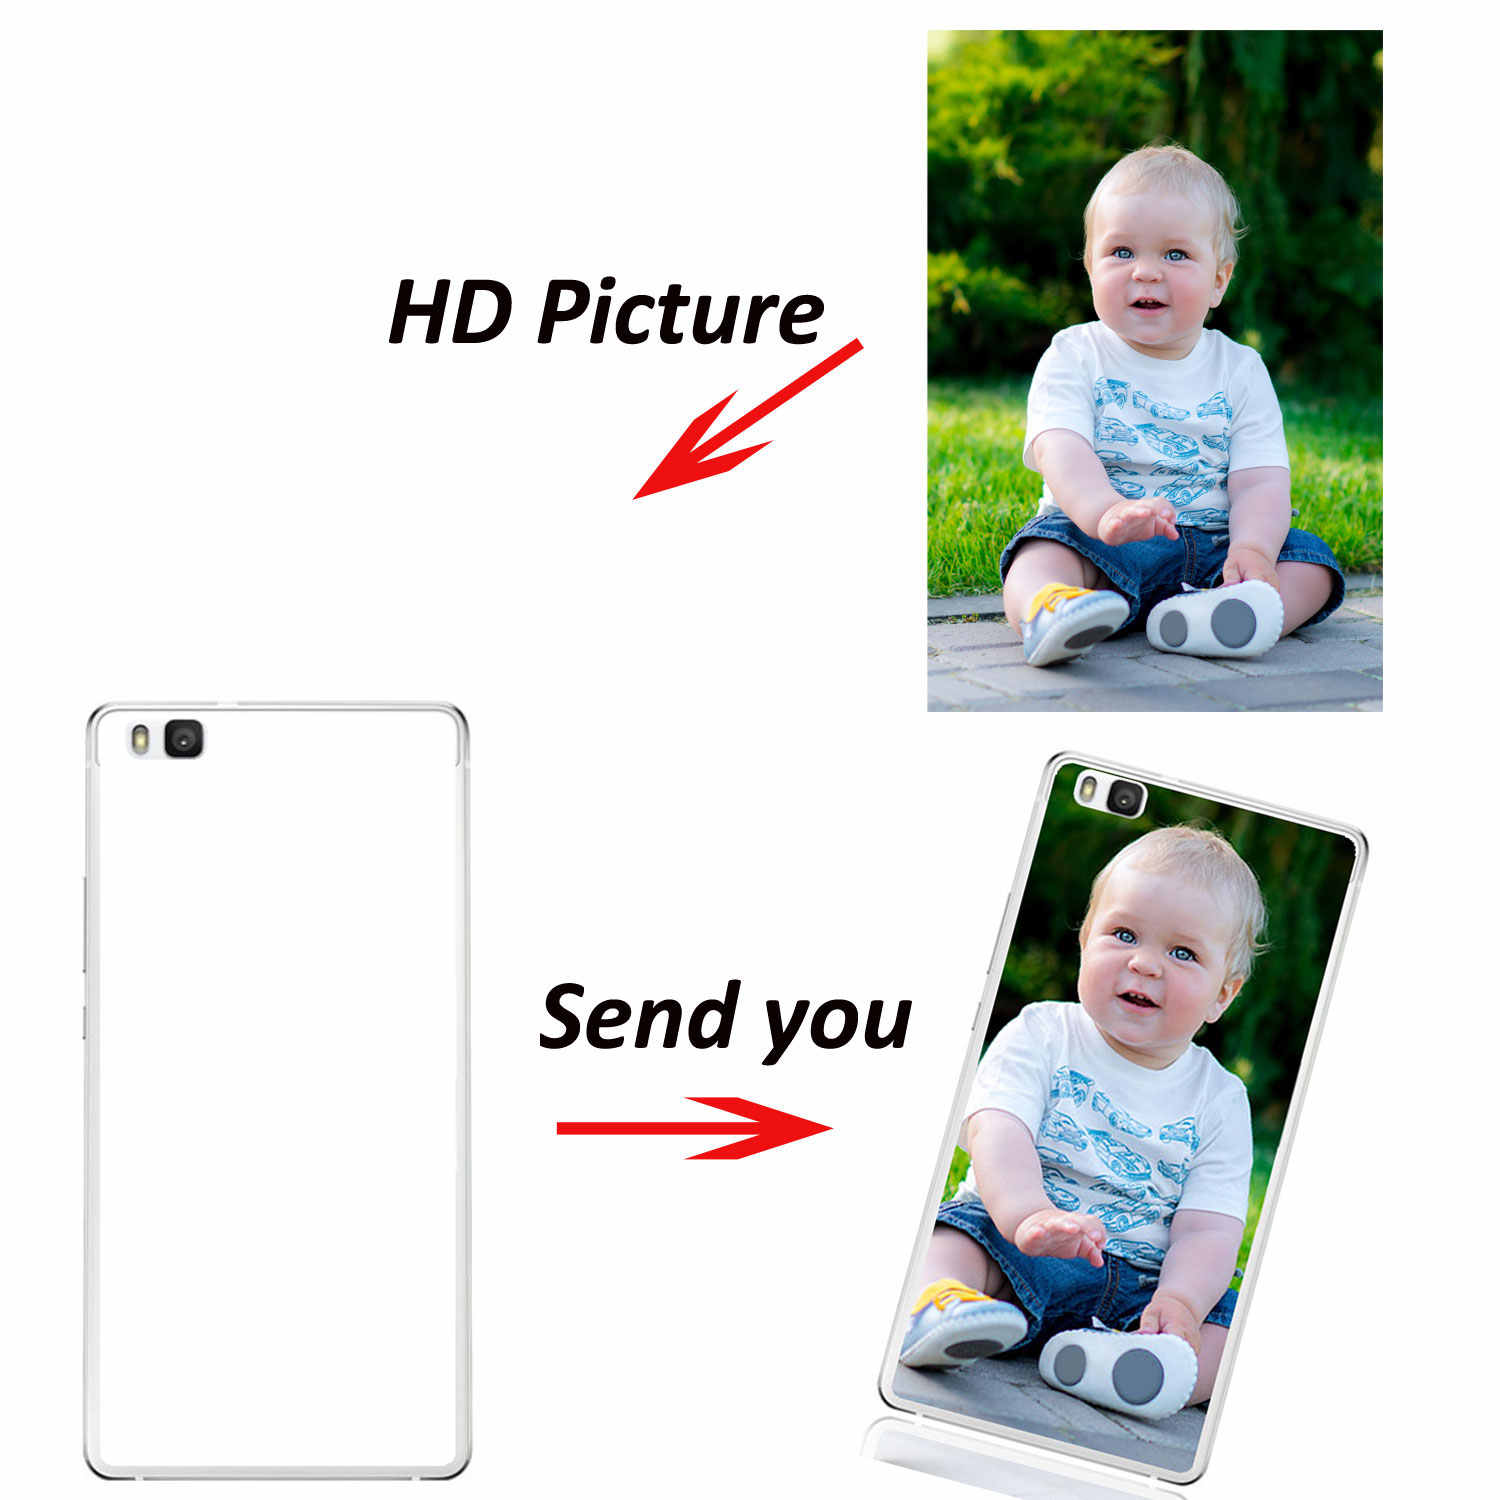 Customized Case for Huawei P30/Pro/Nova 4 5i/Mate 7/8/9 Pro/10Lite/2s plus/Y3 Y5 Y7 Y9 2017/2018 Photo DIY Print Case Soft Cover